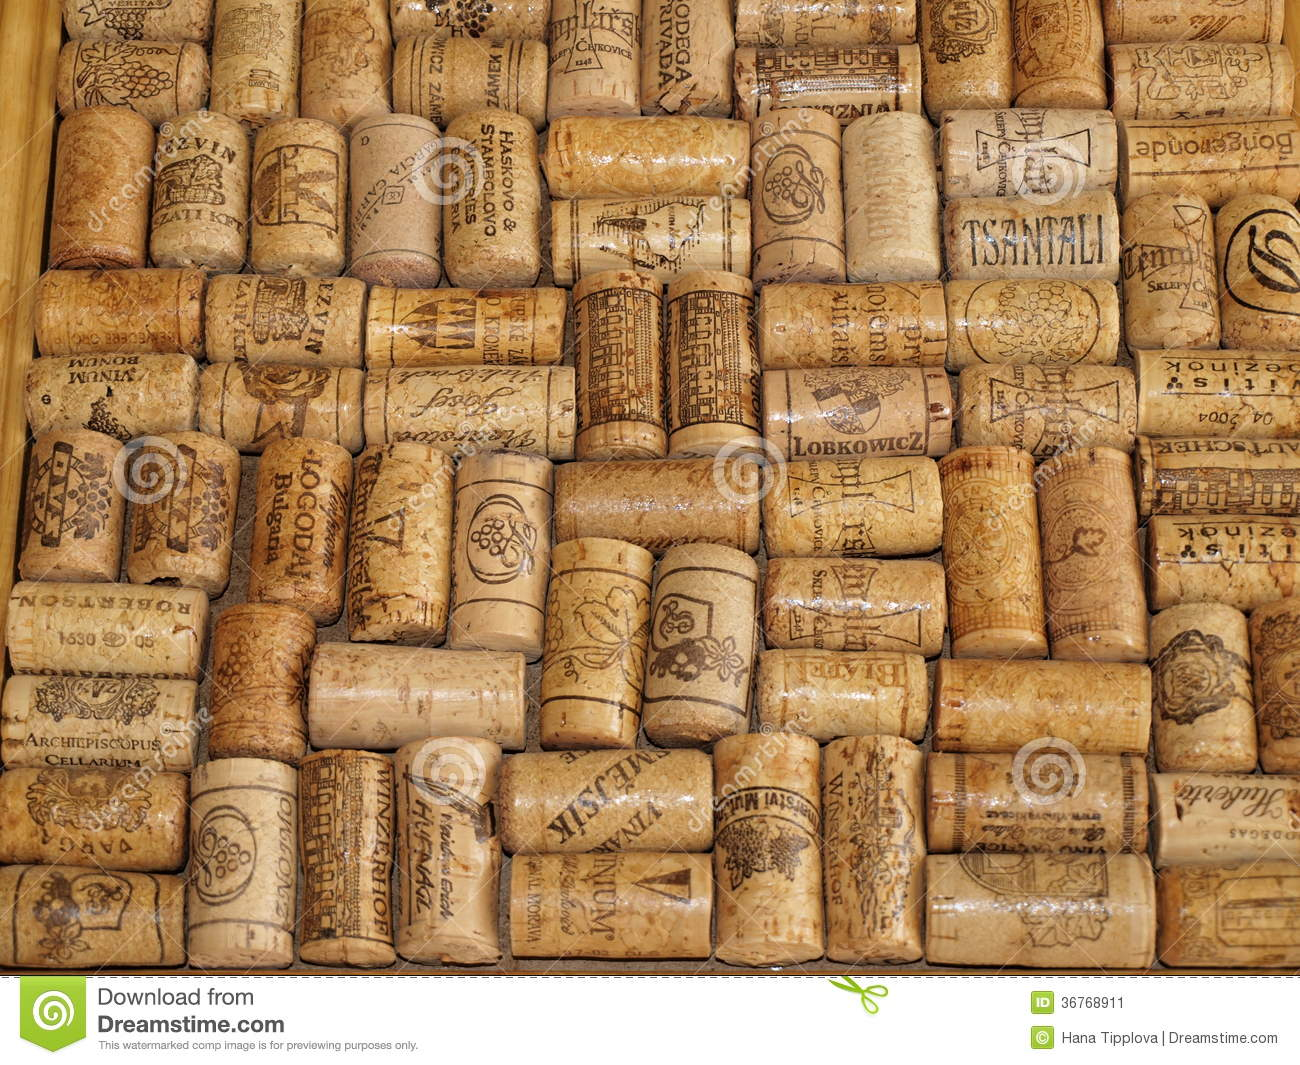 A collection of corks from wine bottles